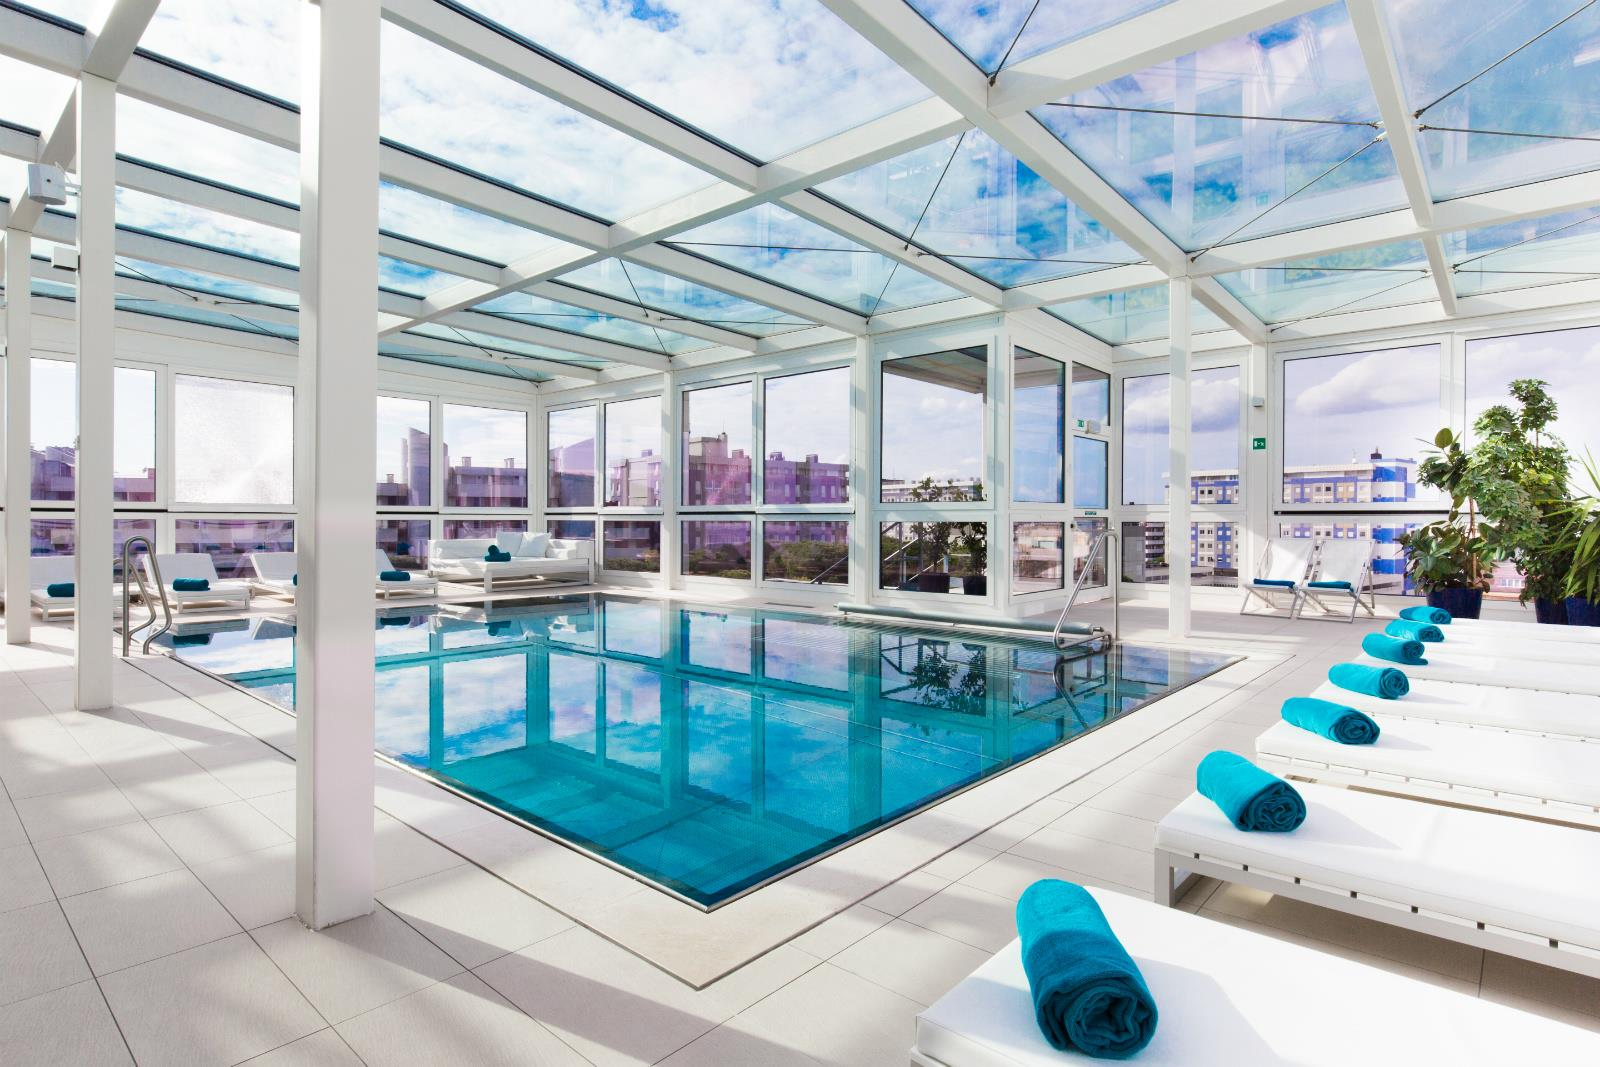 Top floor indoor pool with jacuzzi - Hotel lignano sabbiadoro con piscina ...